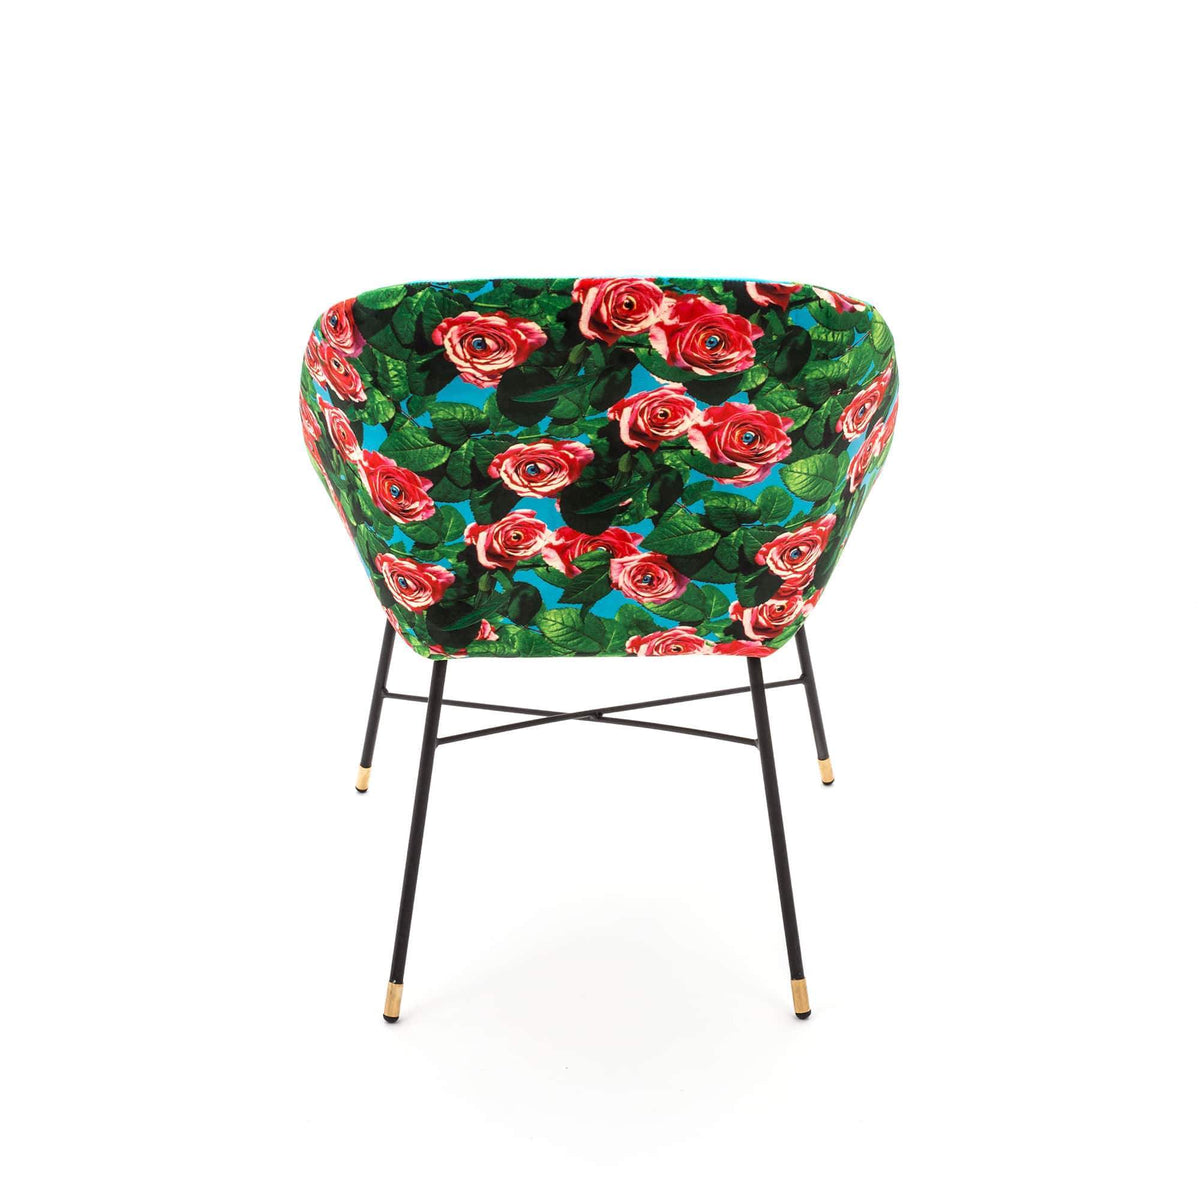 Padded Chair / Roses Seletti Seletti wears Toiletpaper